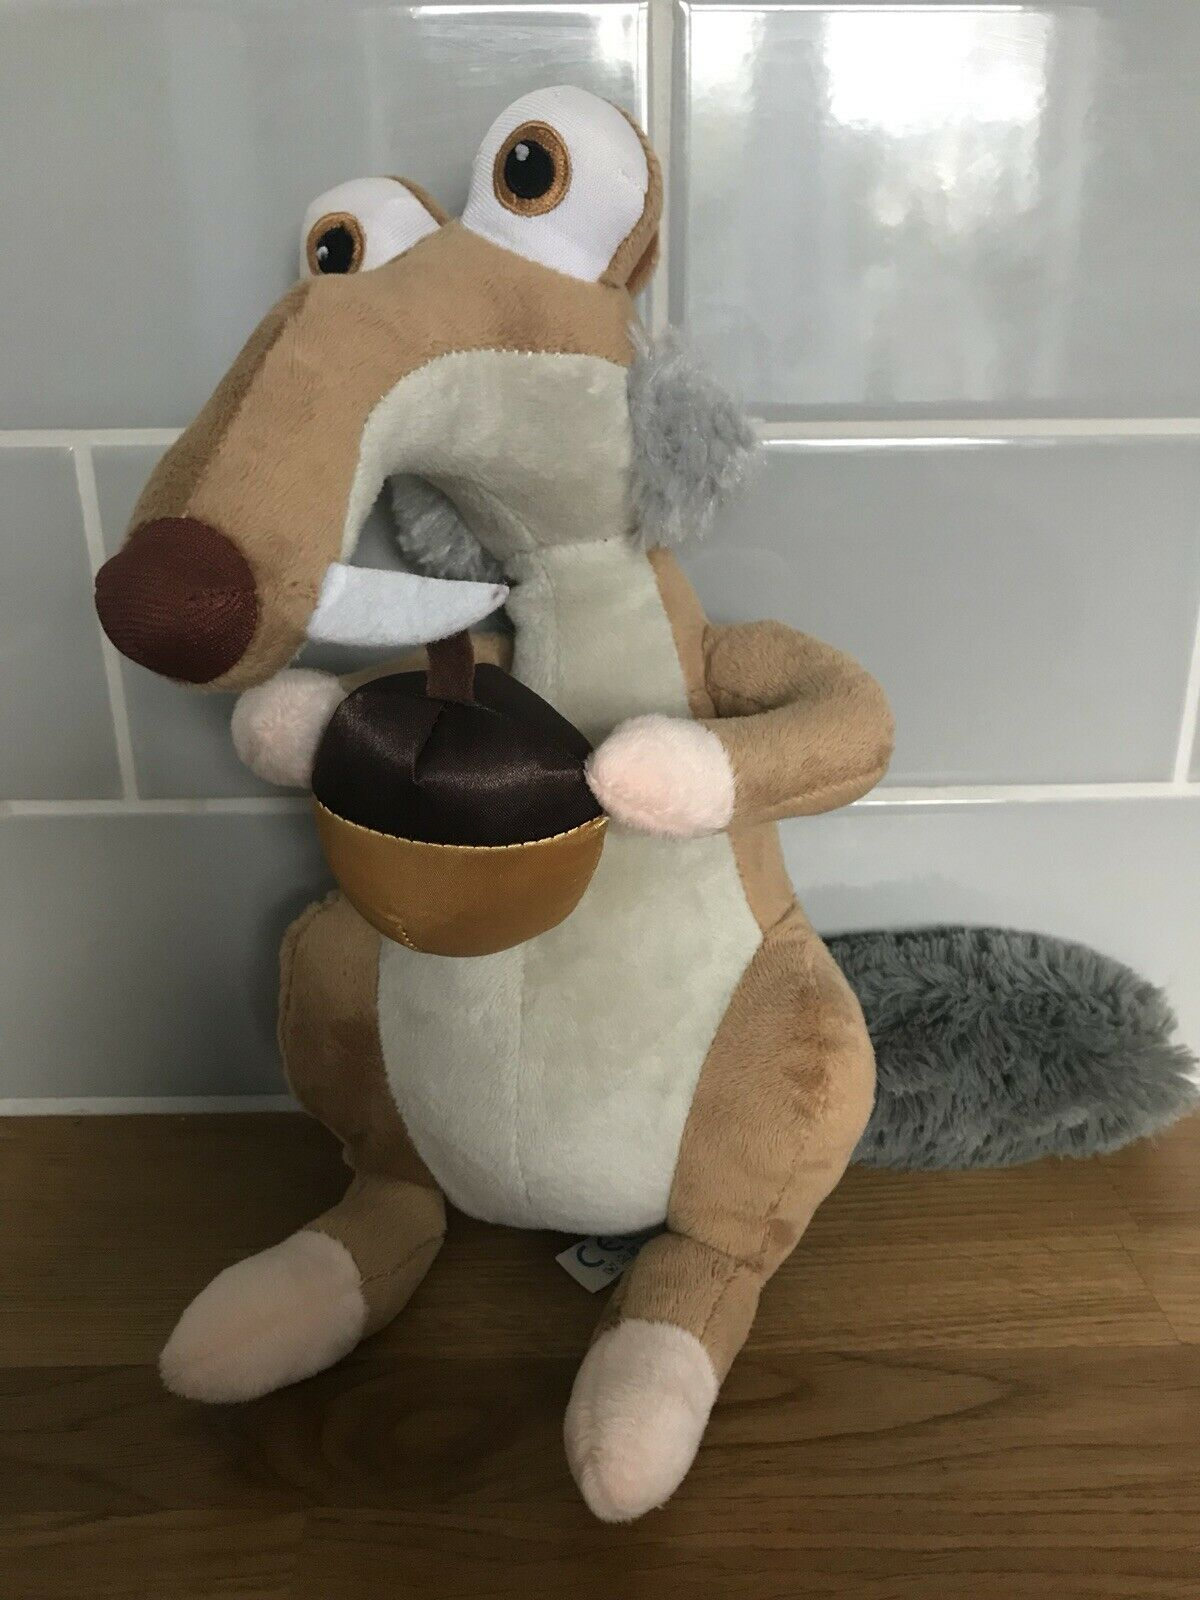 2015 PLAY BY PLAY Ice Age 5 Collision Course - LARGE Scrat Soft Plush Toy